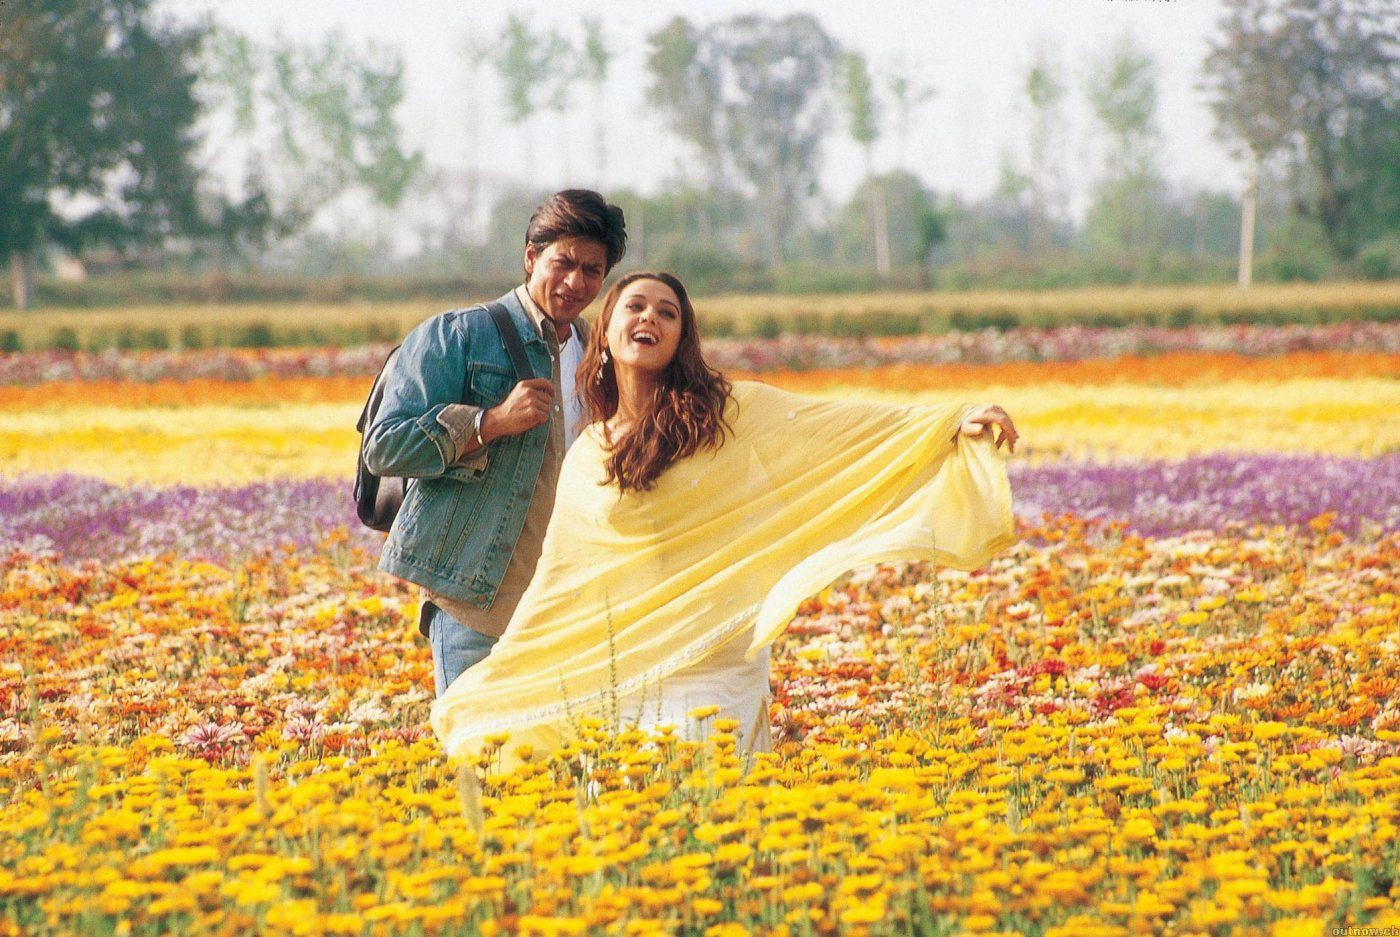 Veer (Shah Rukh Khan) and Zaara (Preity Zinta) stand in a field of yellow and pink flowers